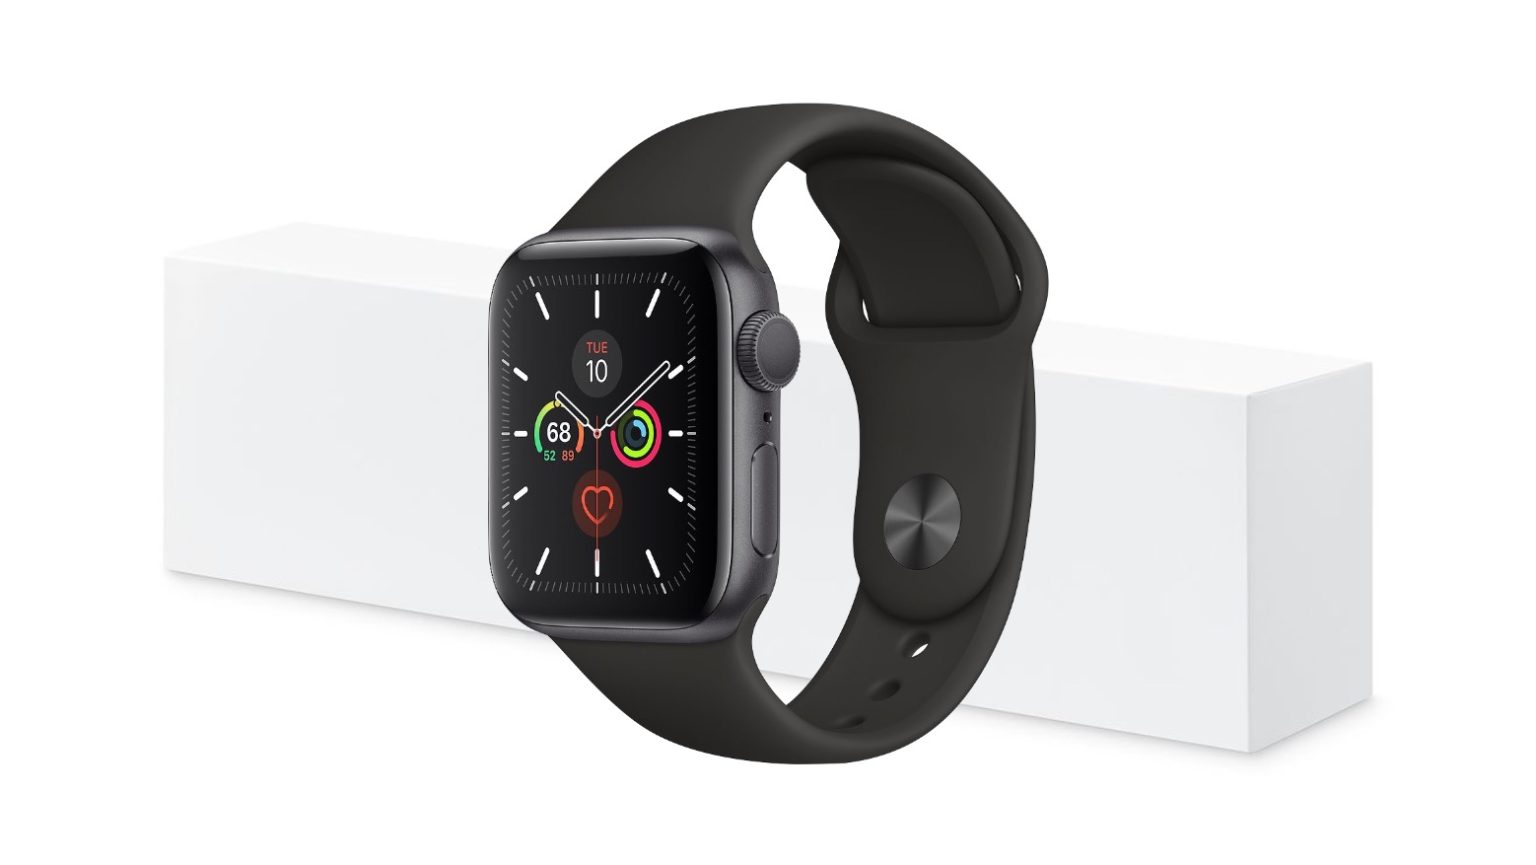 Refurbished Apple Watch Series 5 units are available now